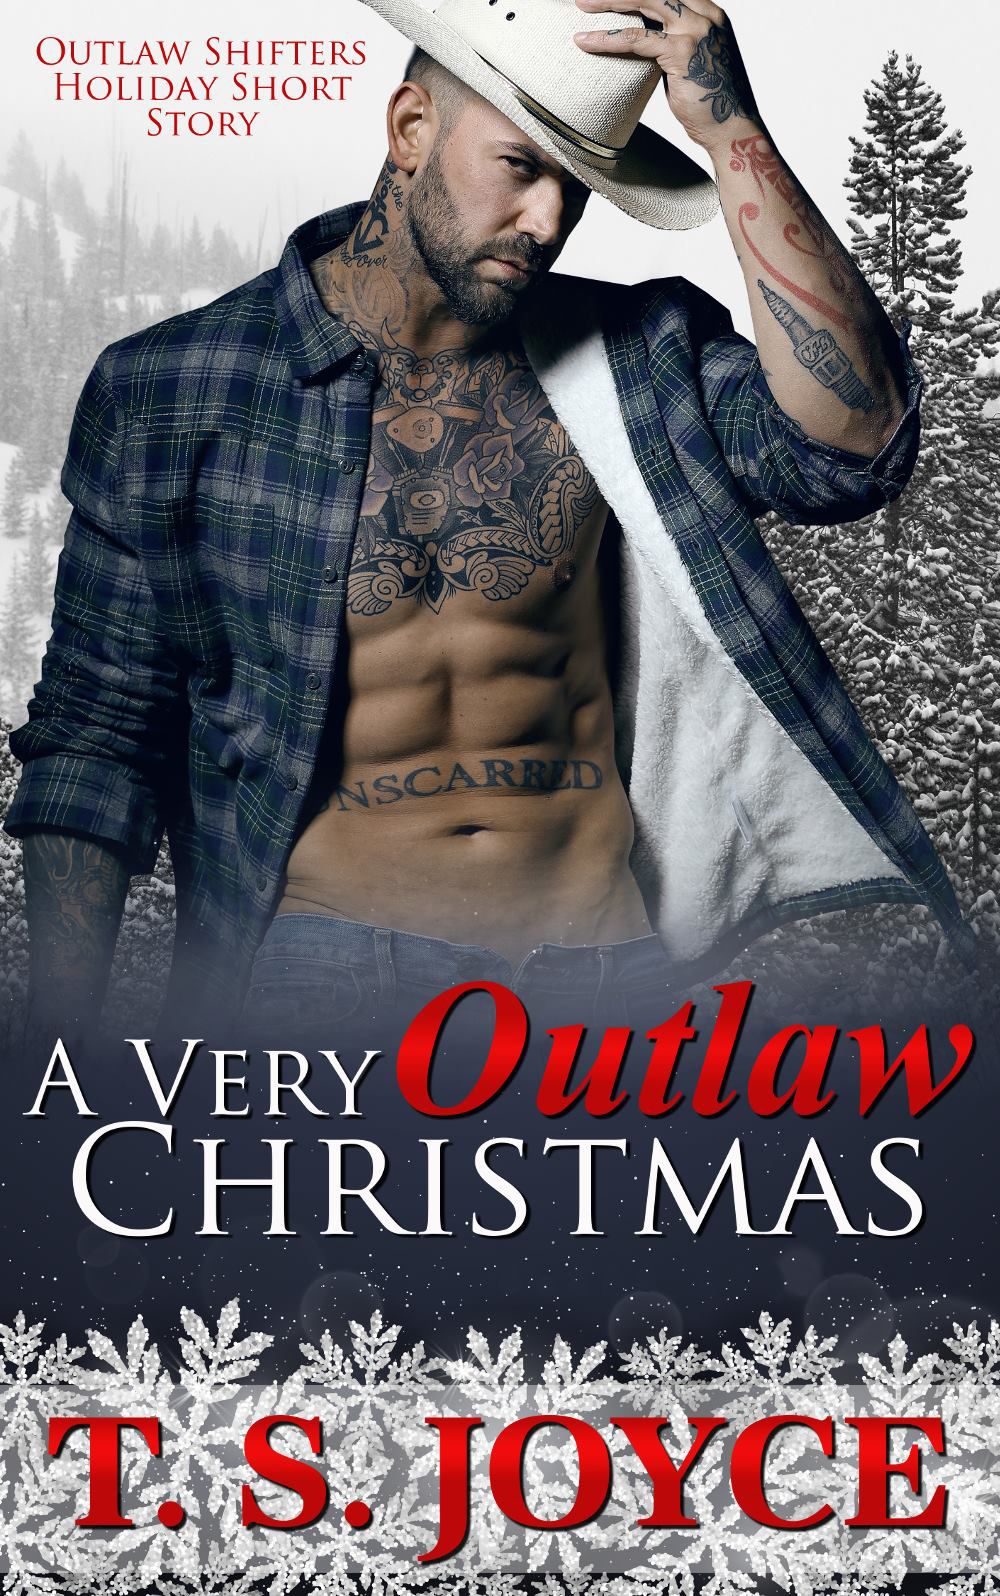 A VERY OUTLAW CHRISTMAS